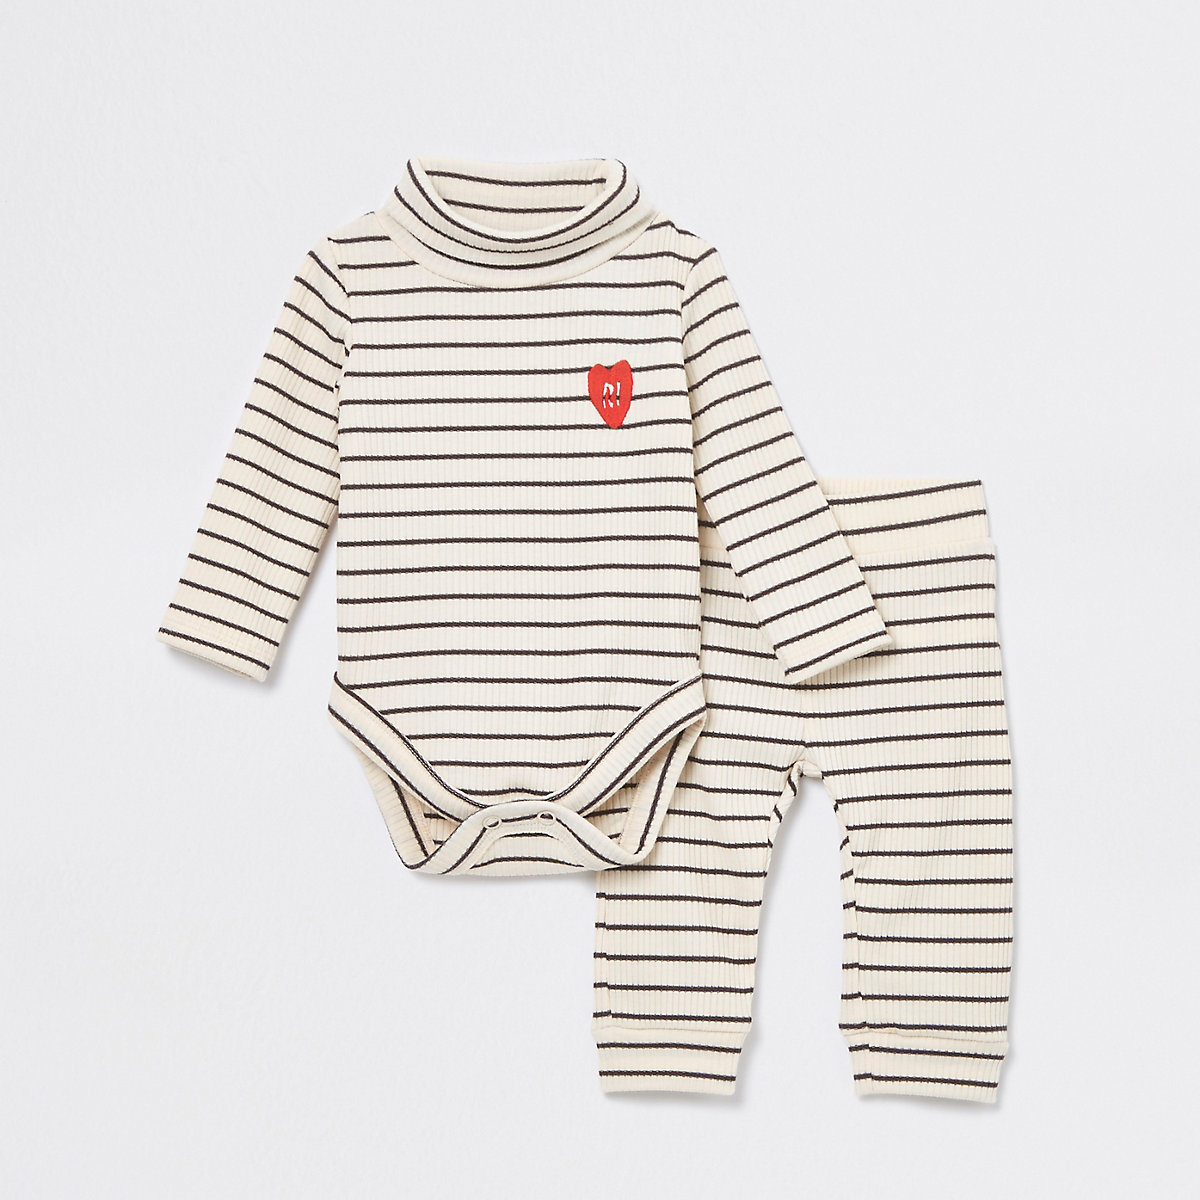 Baby cream ribbed babygrow outfit